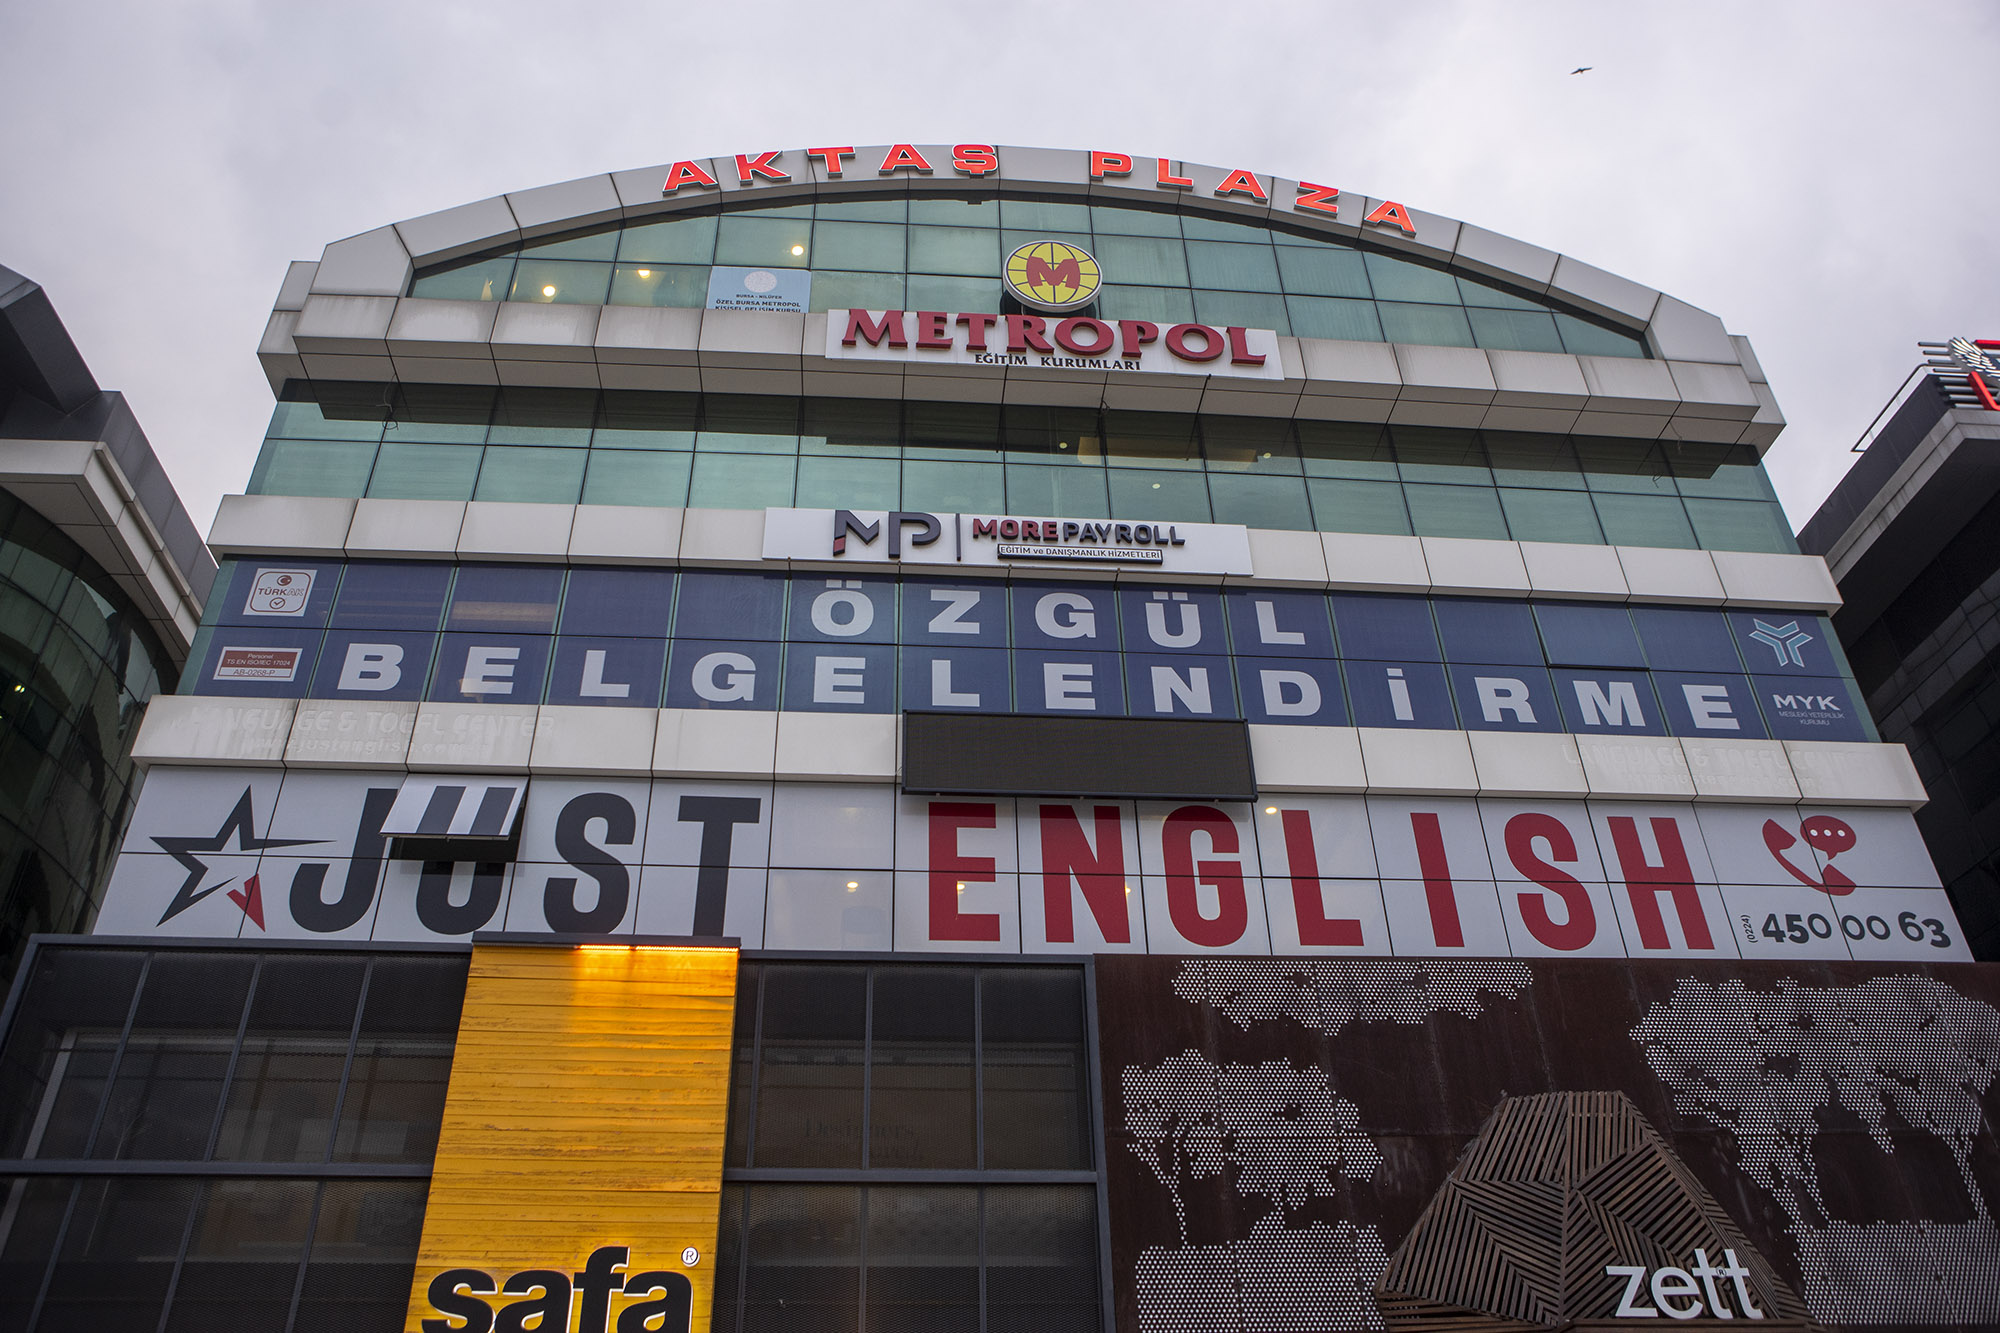 Just English Dil Okulları Bursa/Nilüfer Şubesi